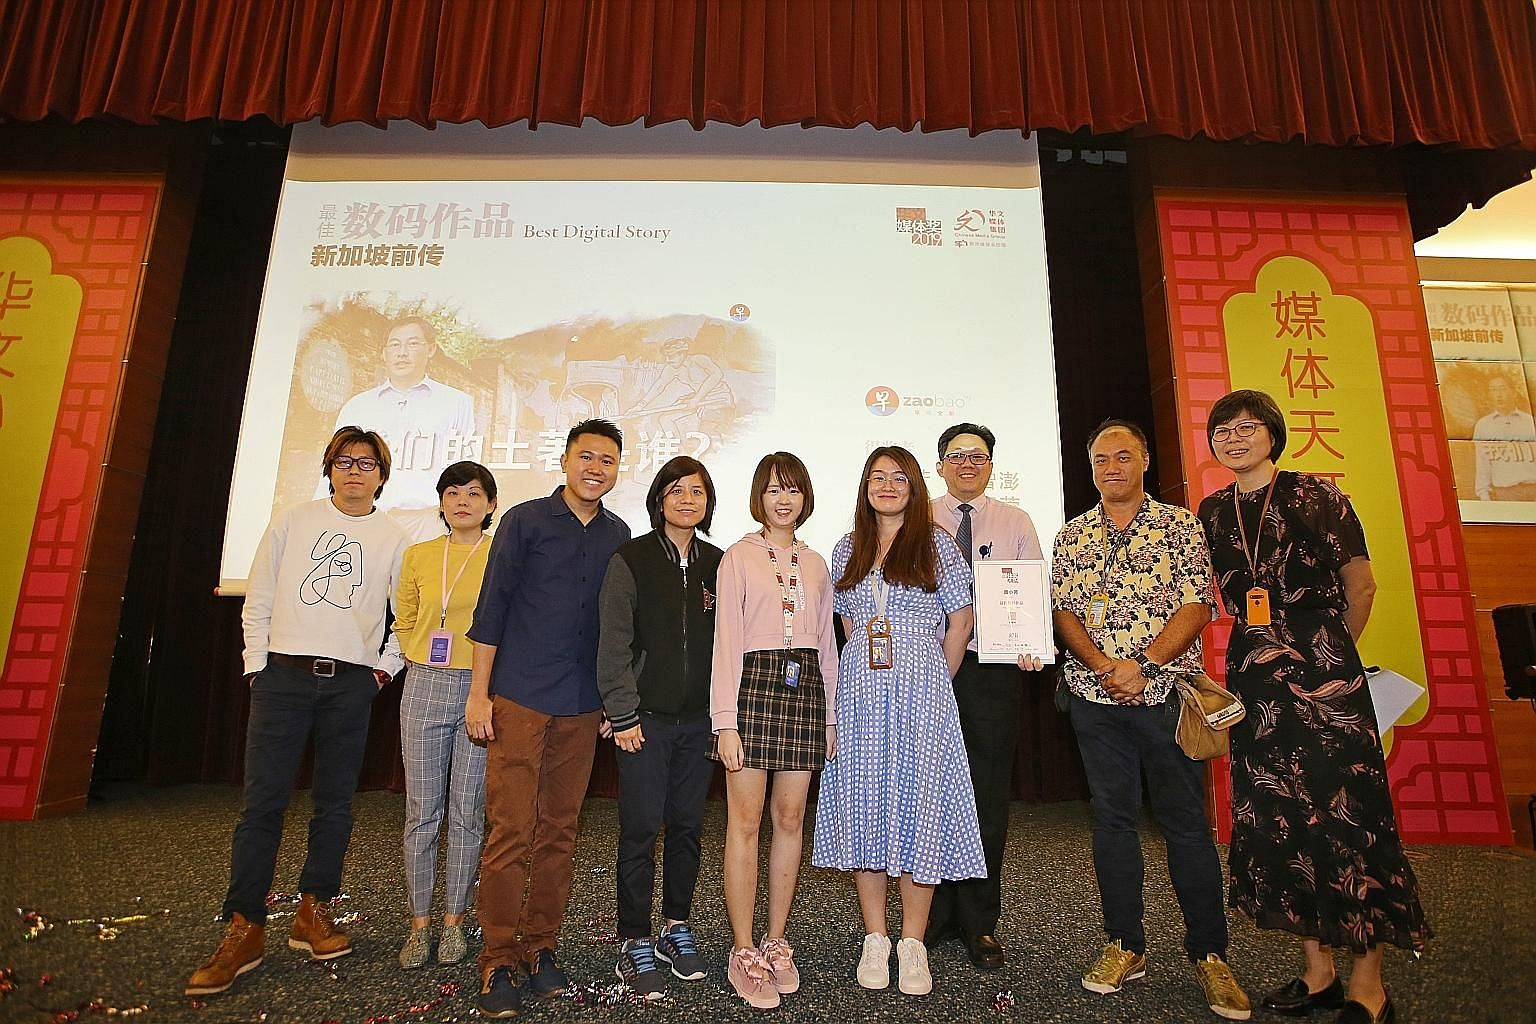 Singapore Press Holdings chief executive Ng Yat Chung (third from right) and Chinese Media Group head Lee Huay Leng (far right) with the team behind Treasures Before Us, which won Best Digital Story, (from left) Mr Ho Chin Wee, Ms Ang Hui Cheng, Mr L